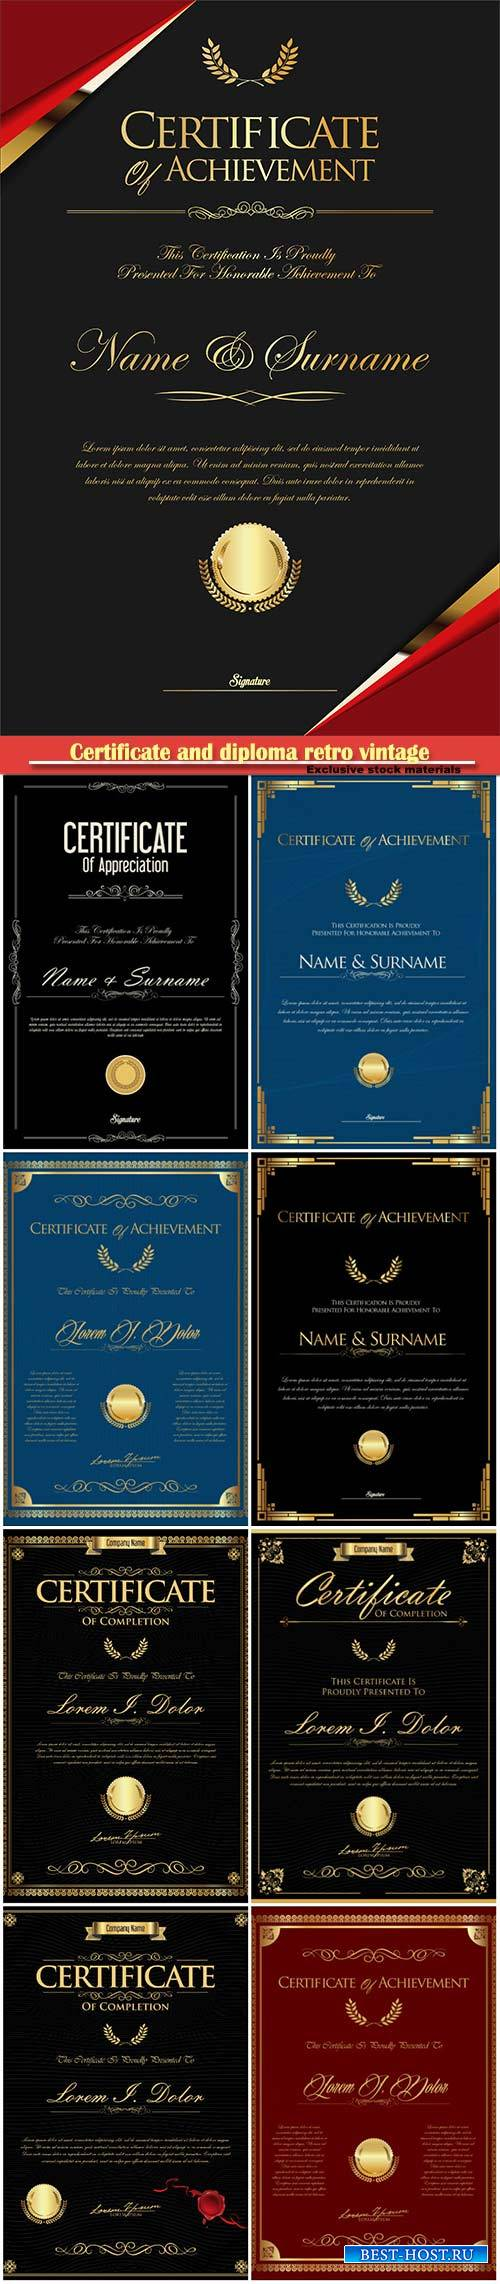 Certificate and diploma retro vintage vector template